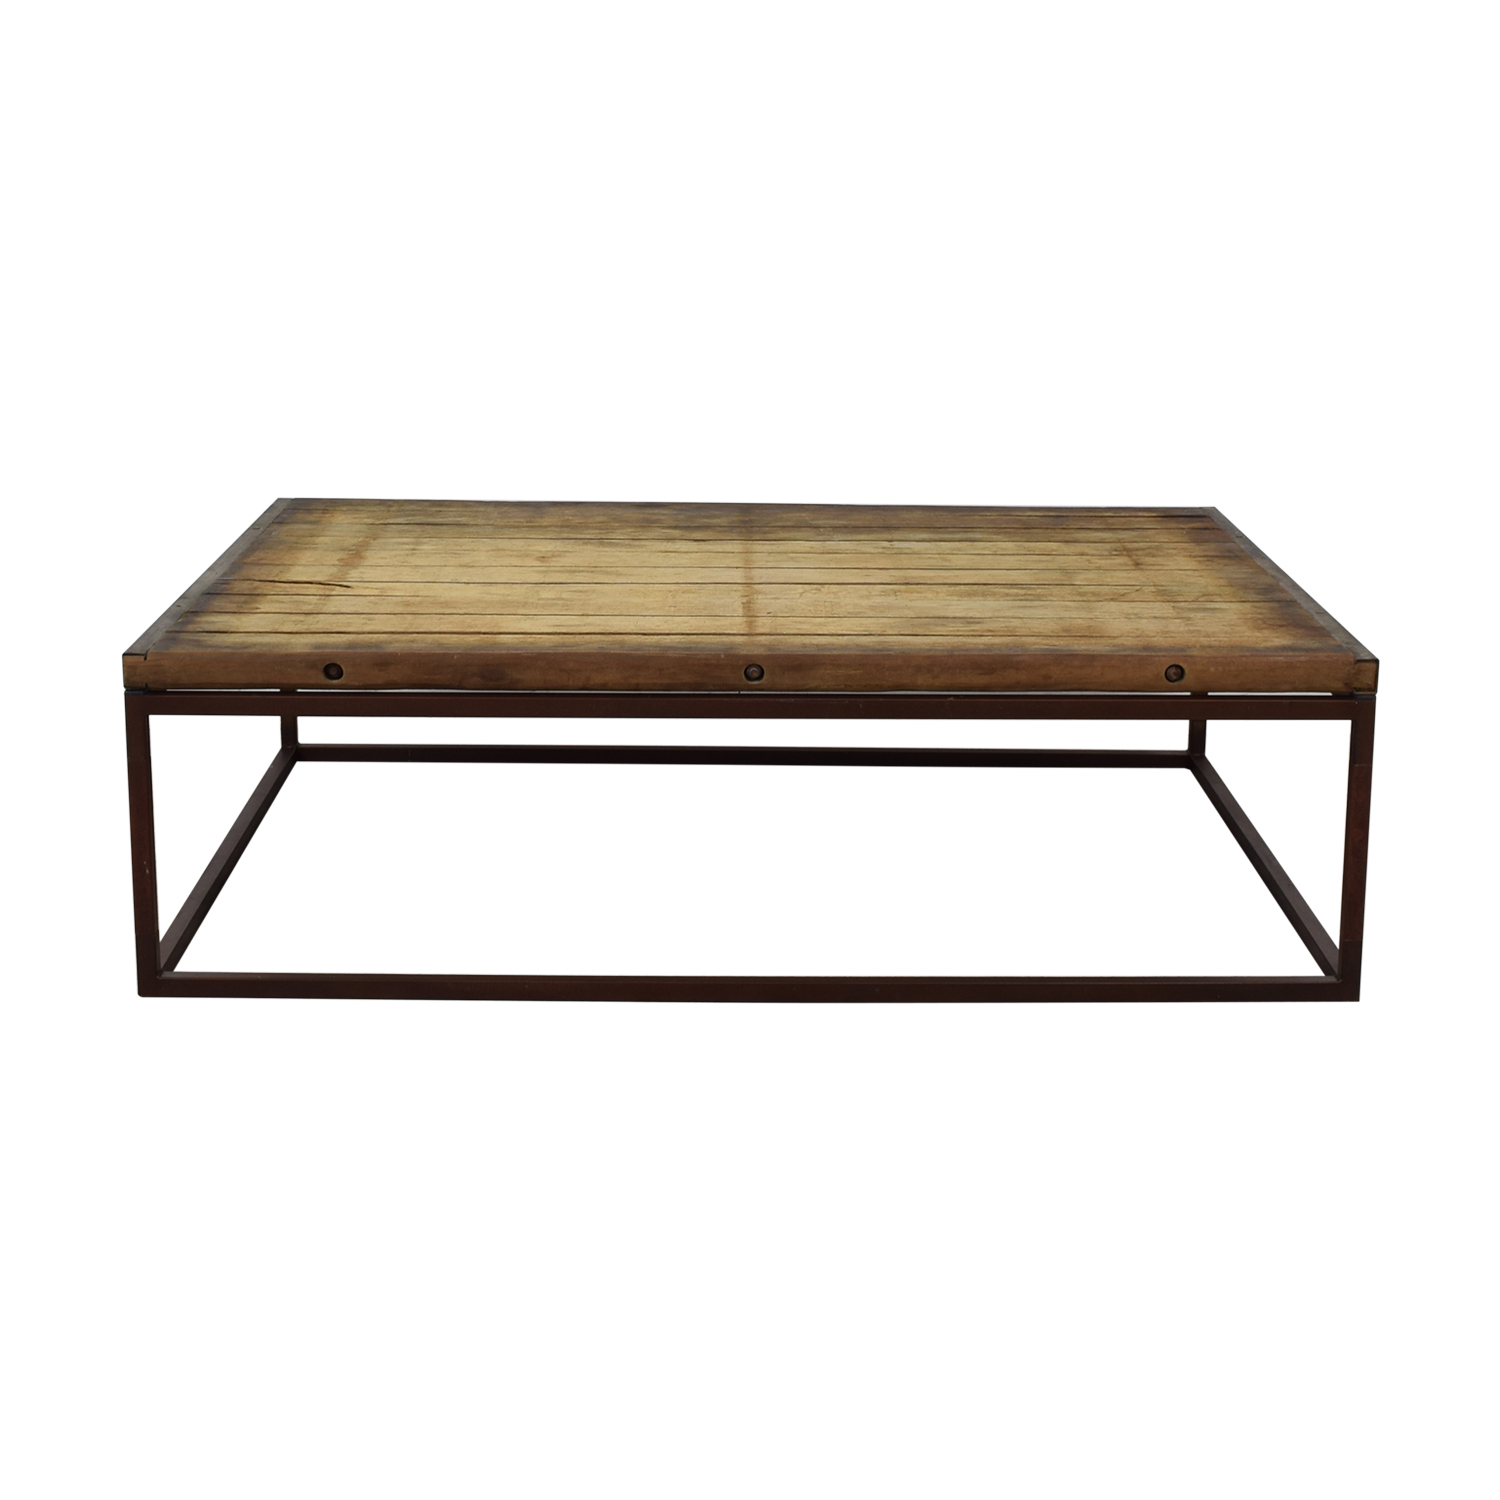 Restoration Hardware Restoration Hardware Bricklayer's Coffee Table discount